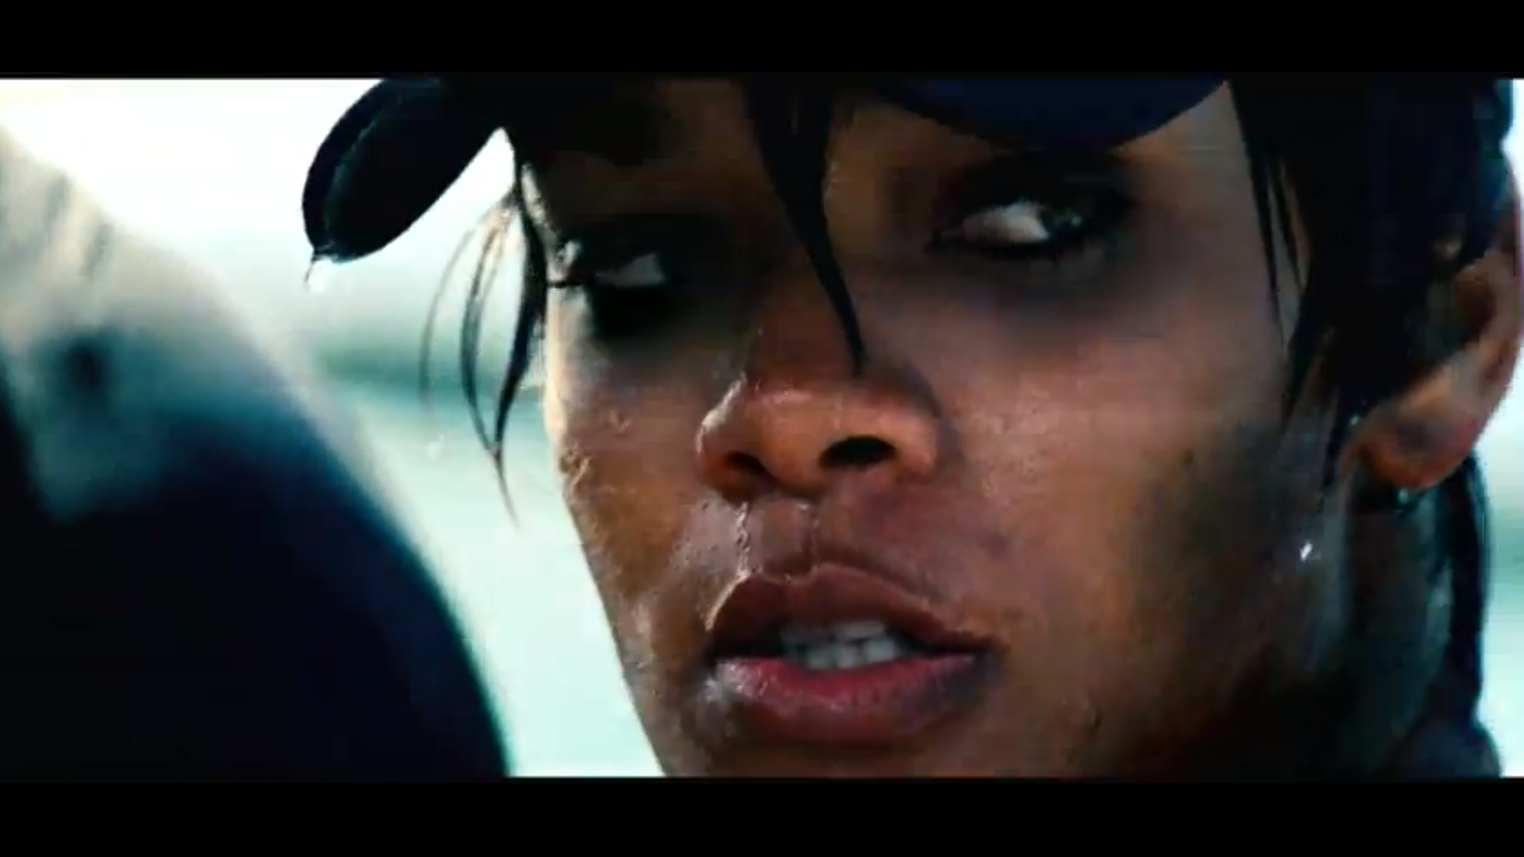 Must-See: Rihanna's 'Battleship' Trailer